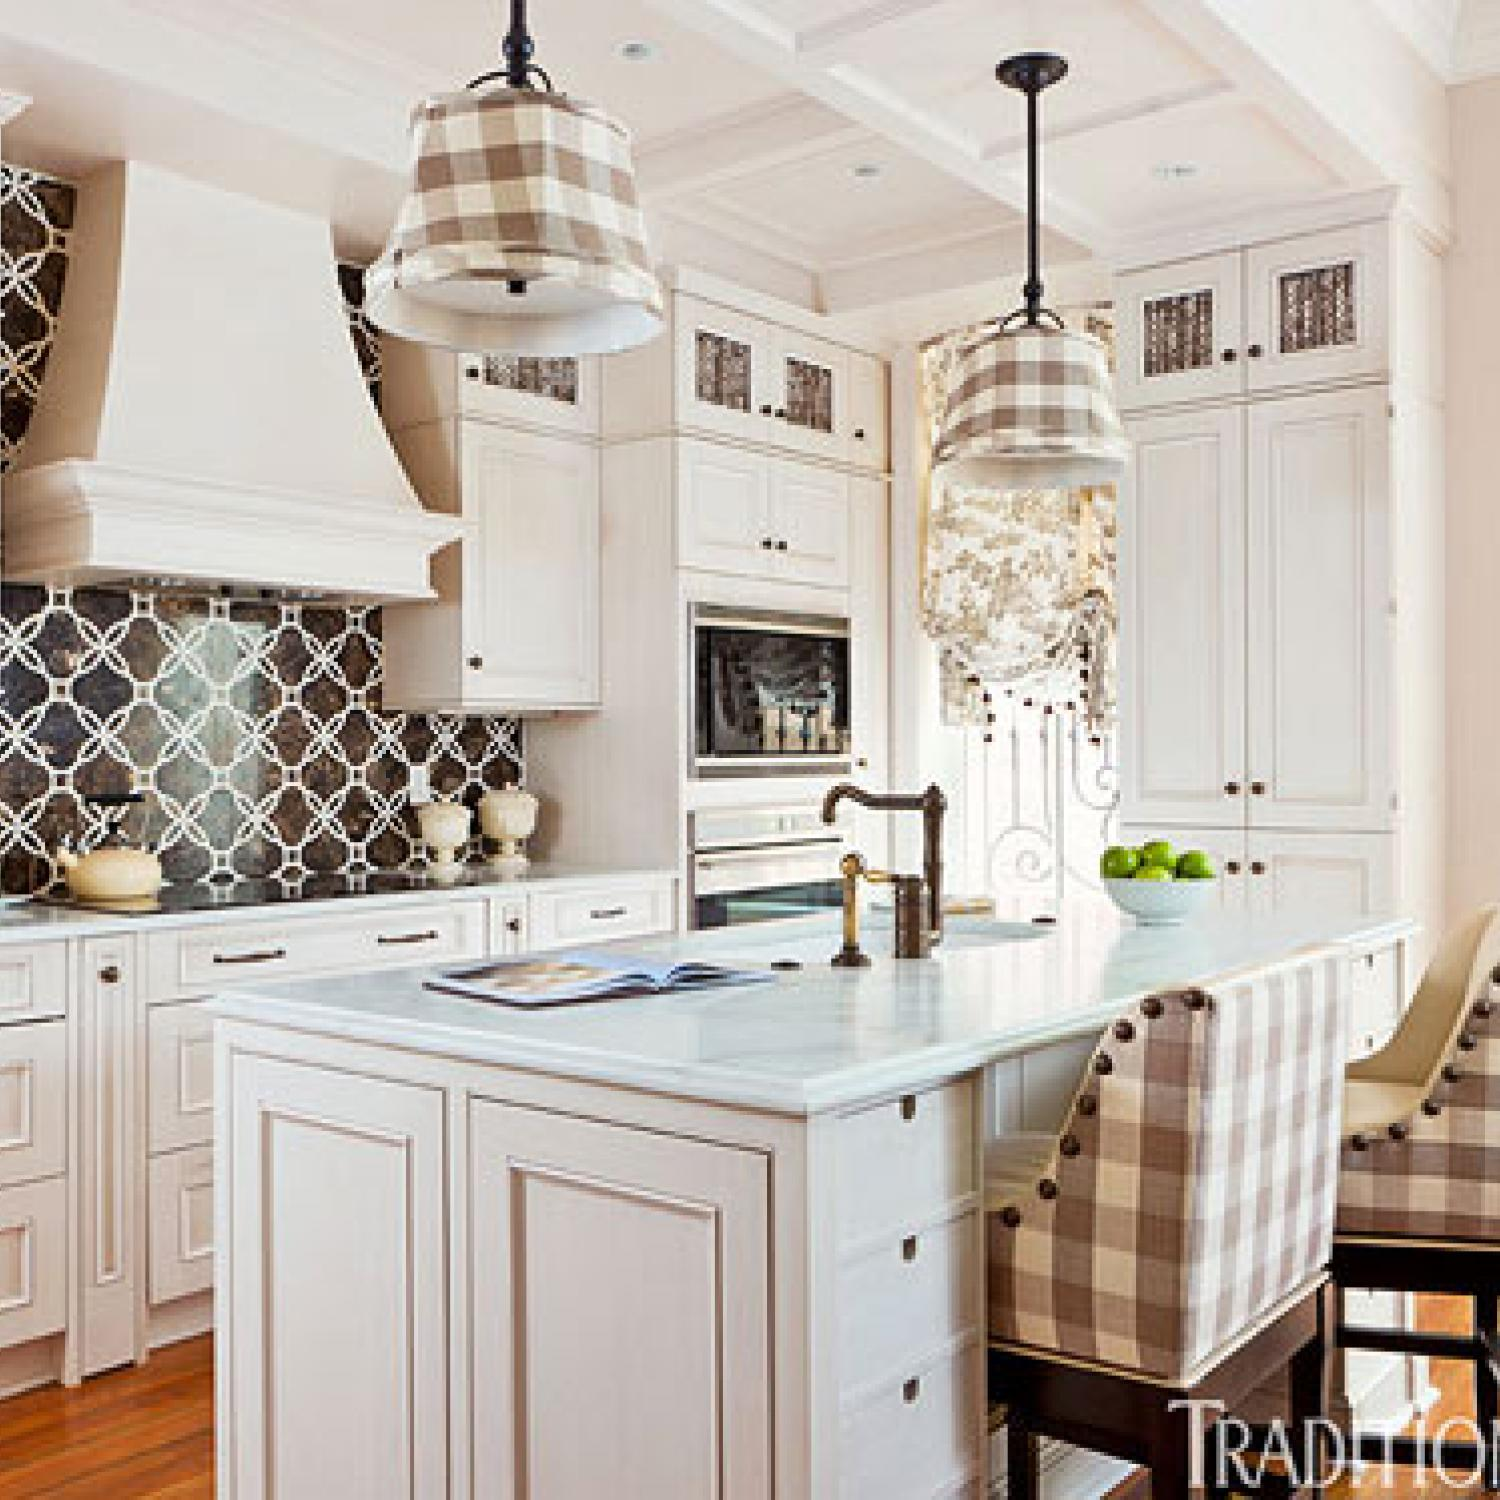 Kitchen With Living Room Design: 10 Steps To A Fab Kitchen